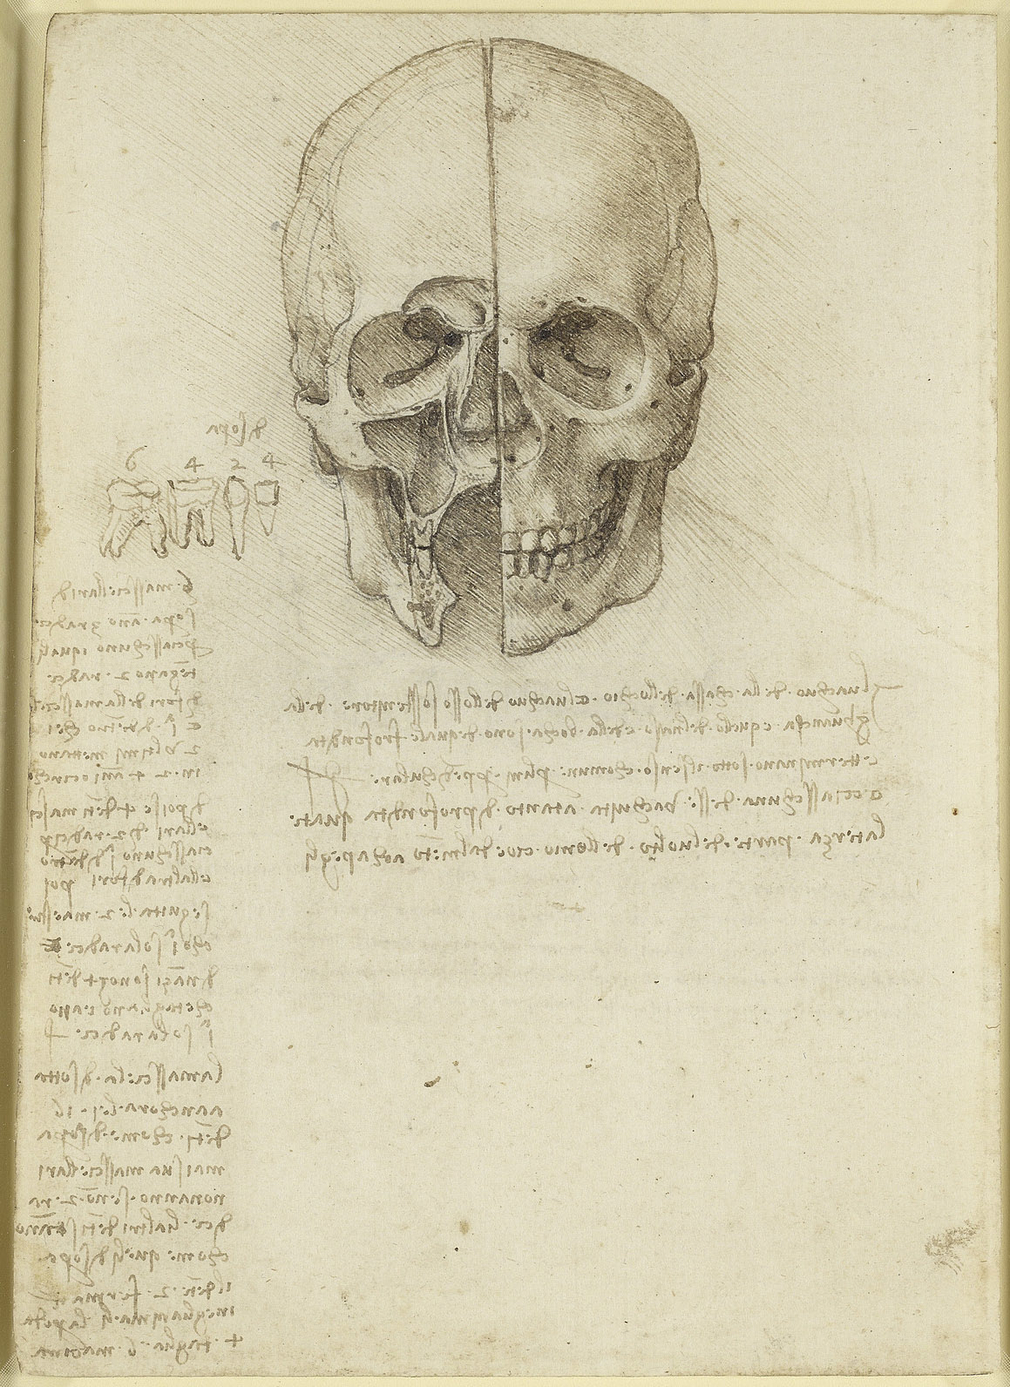 A drawing of askull viewed obliquely from above and the left, whichshowstheintracranial nervesand vessels.With notes belowon the importance of the cranium as the seat of all nervous activities, in Leonardo's